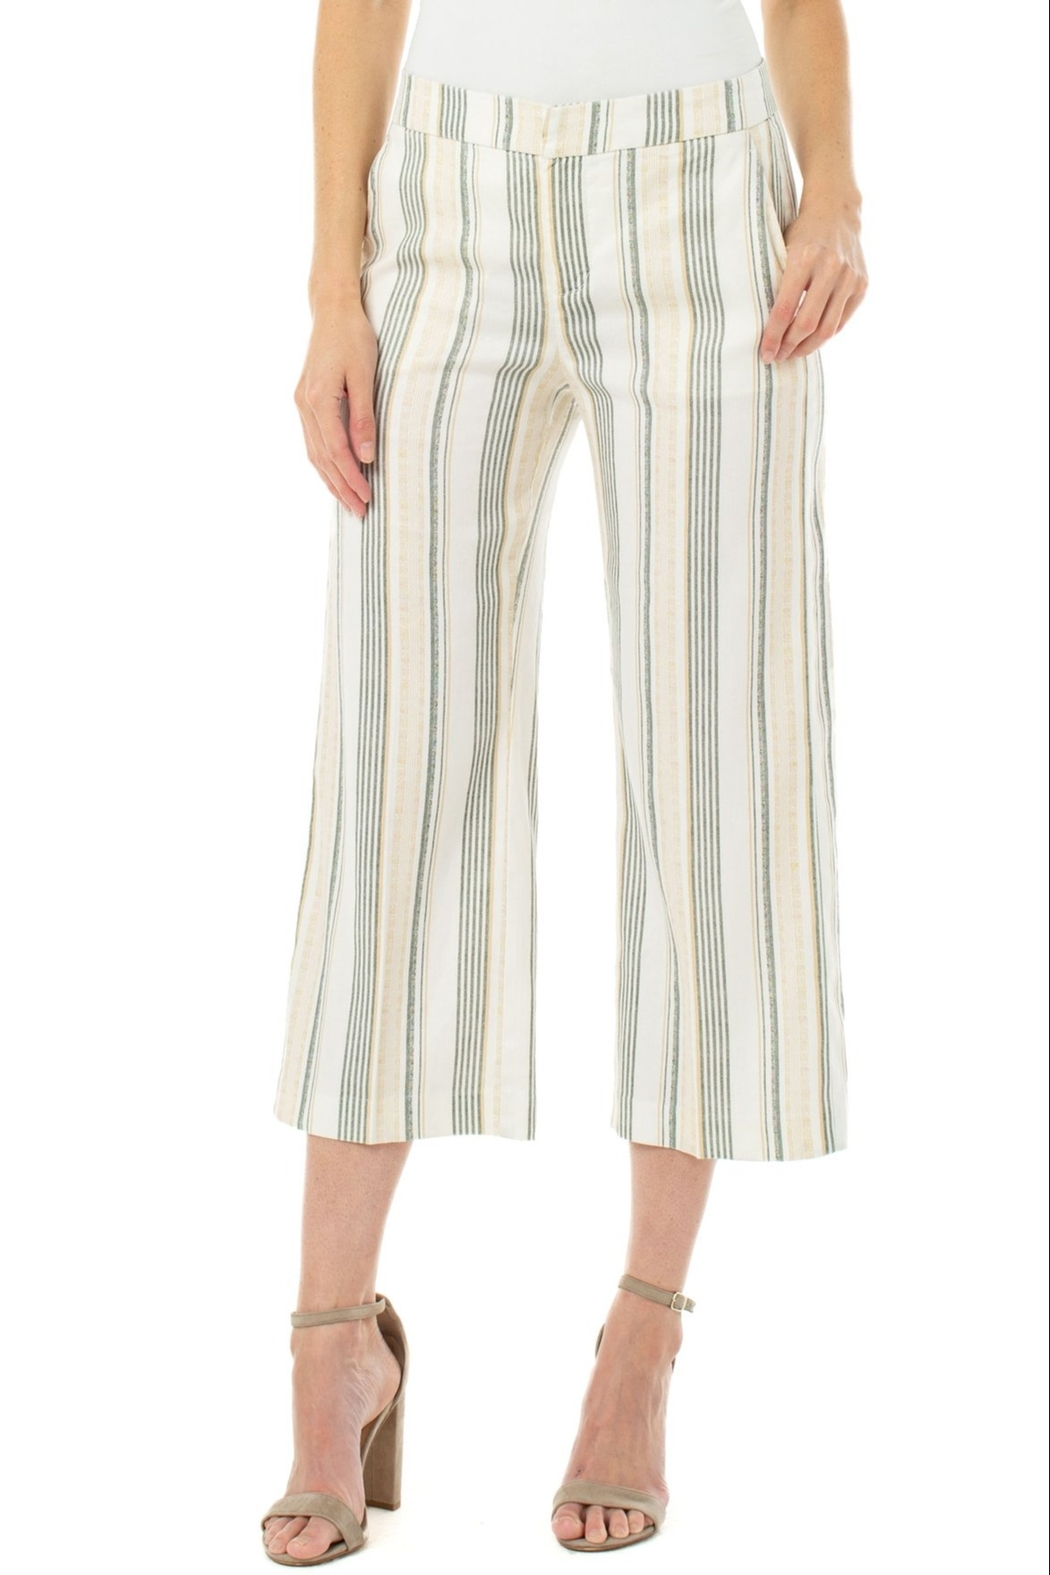 Liverpool Stretch Linen Cropped Trouser - Front Cropped Image